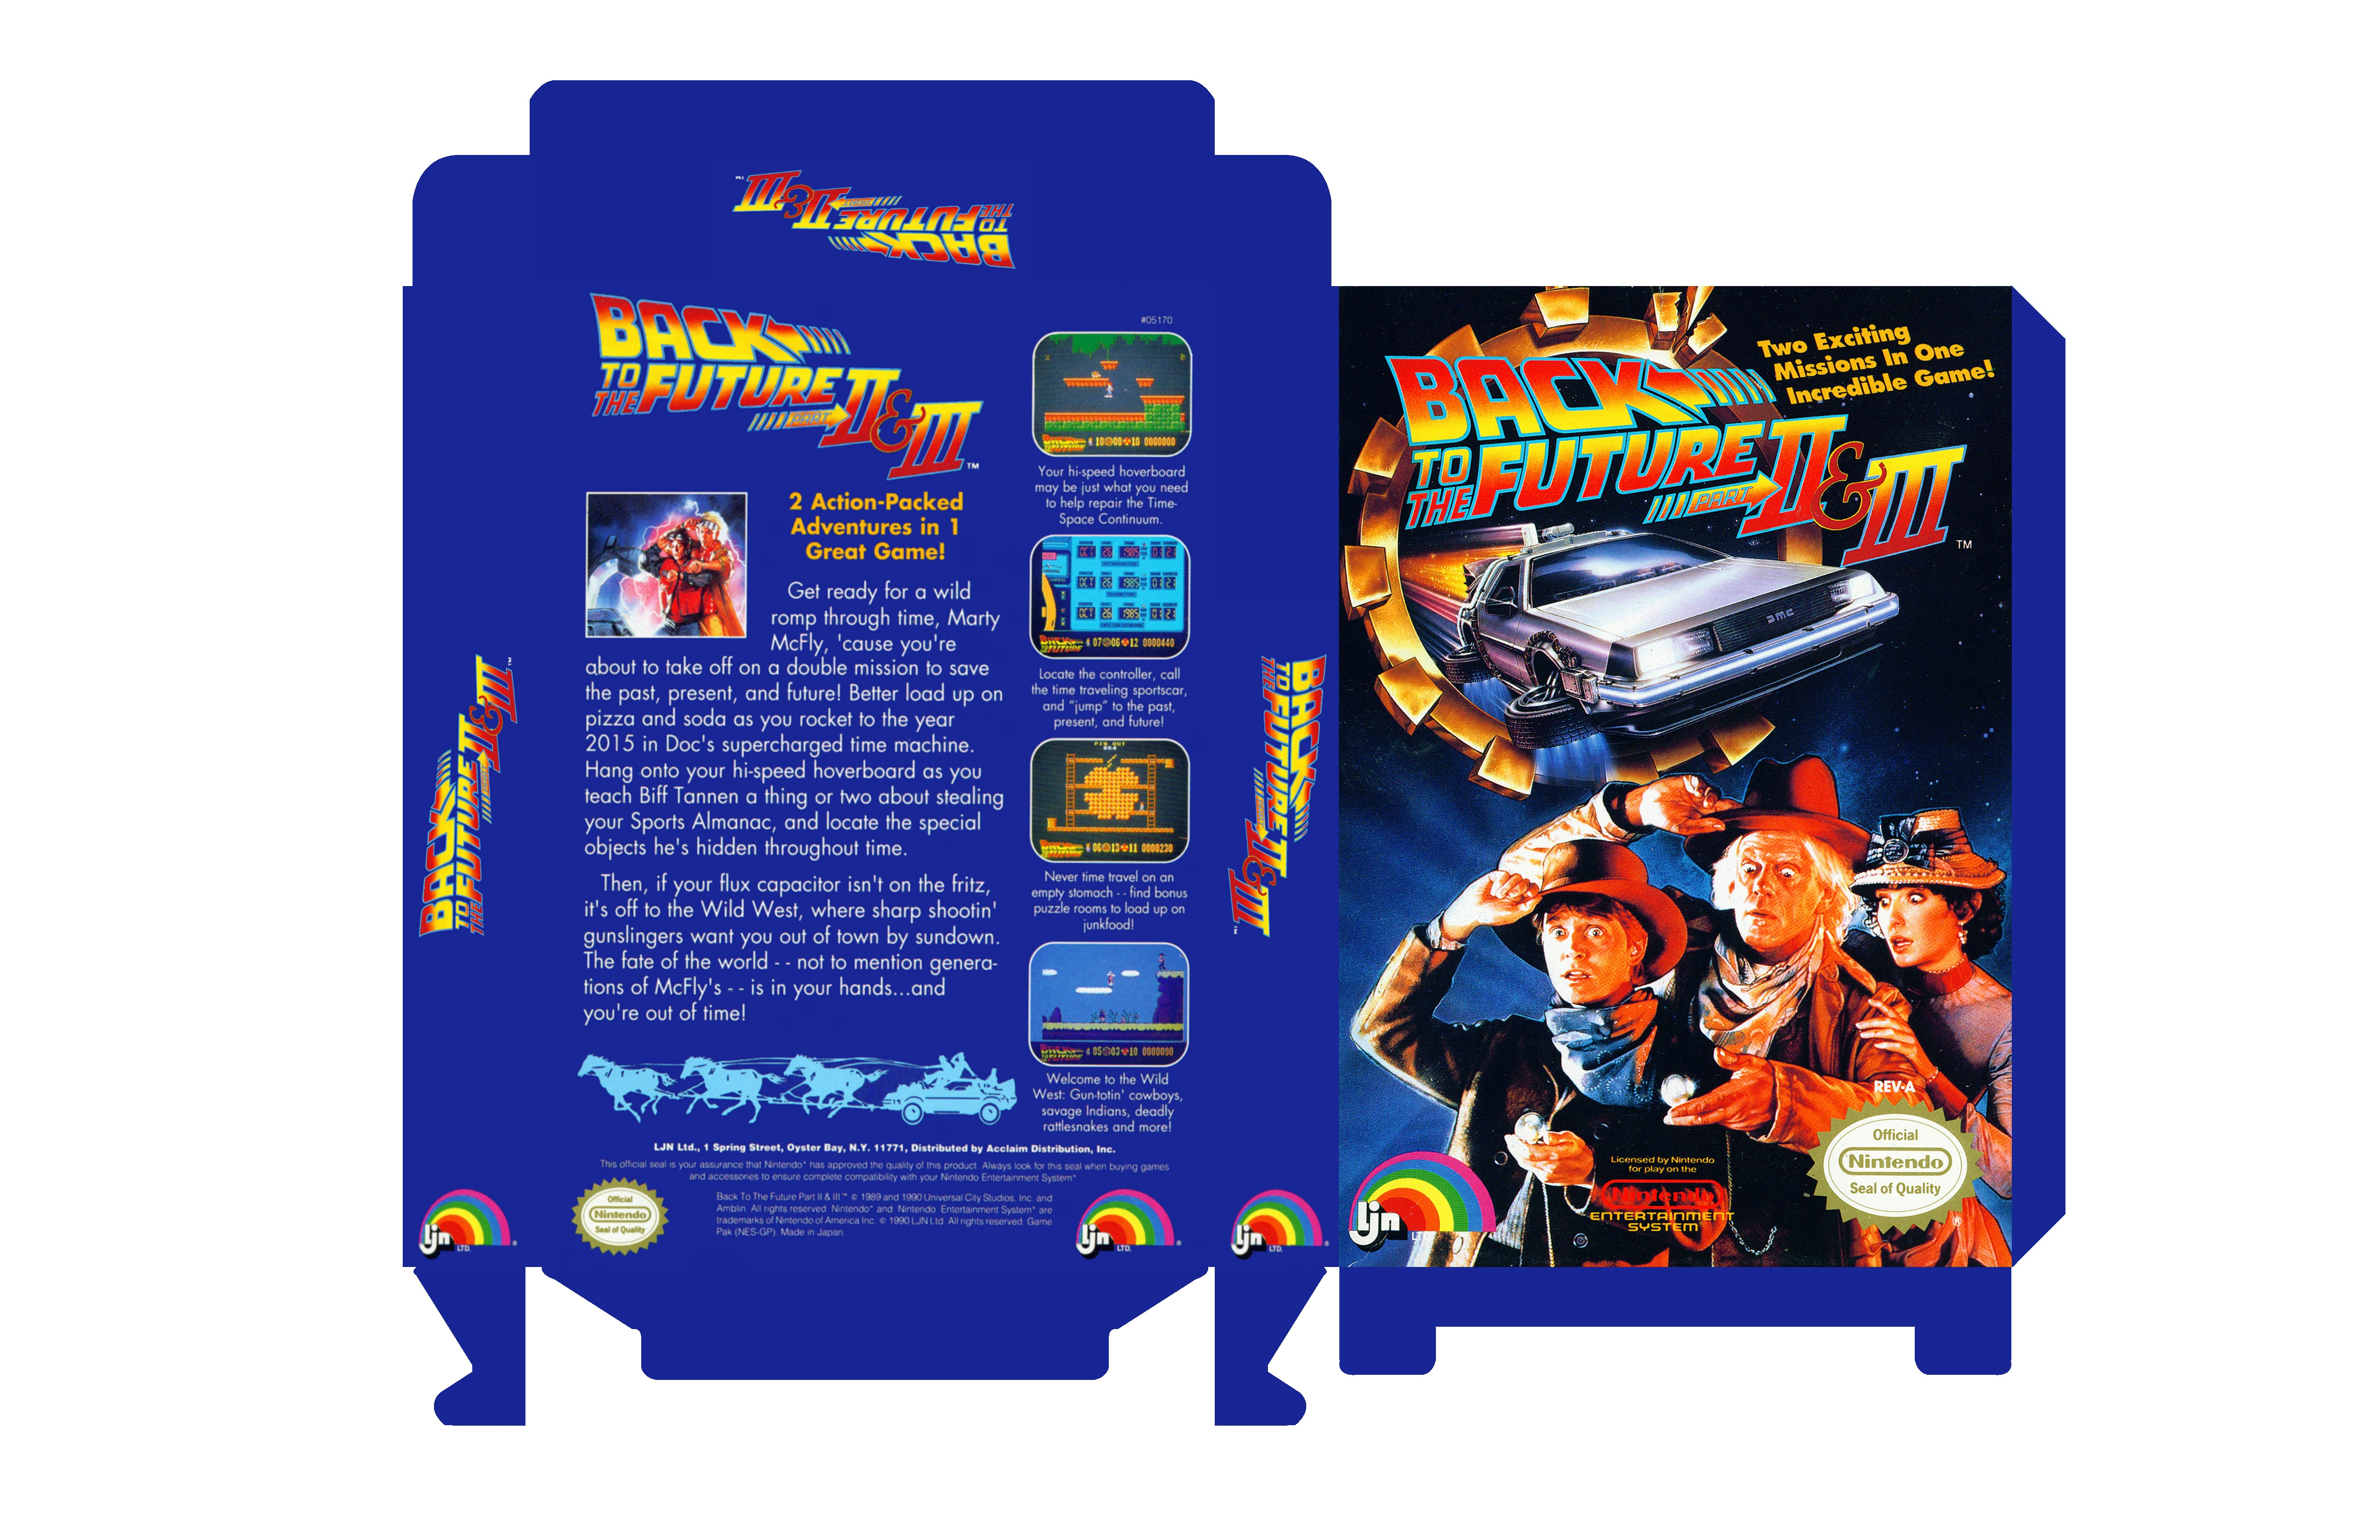 Back to the future ii amp iii nes box art cover by laughatbilly